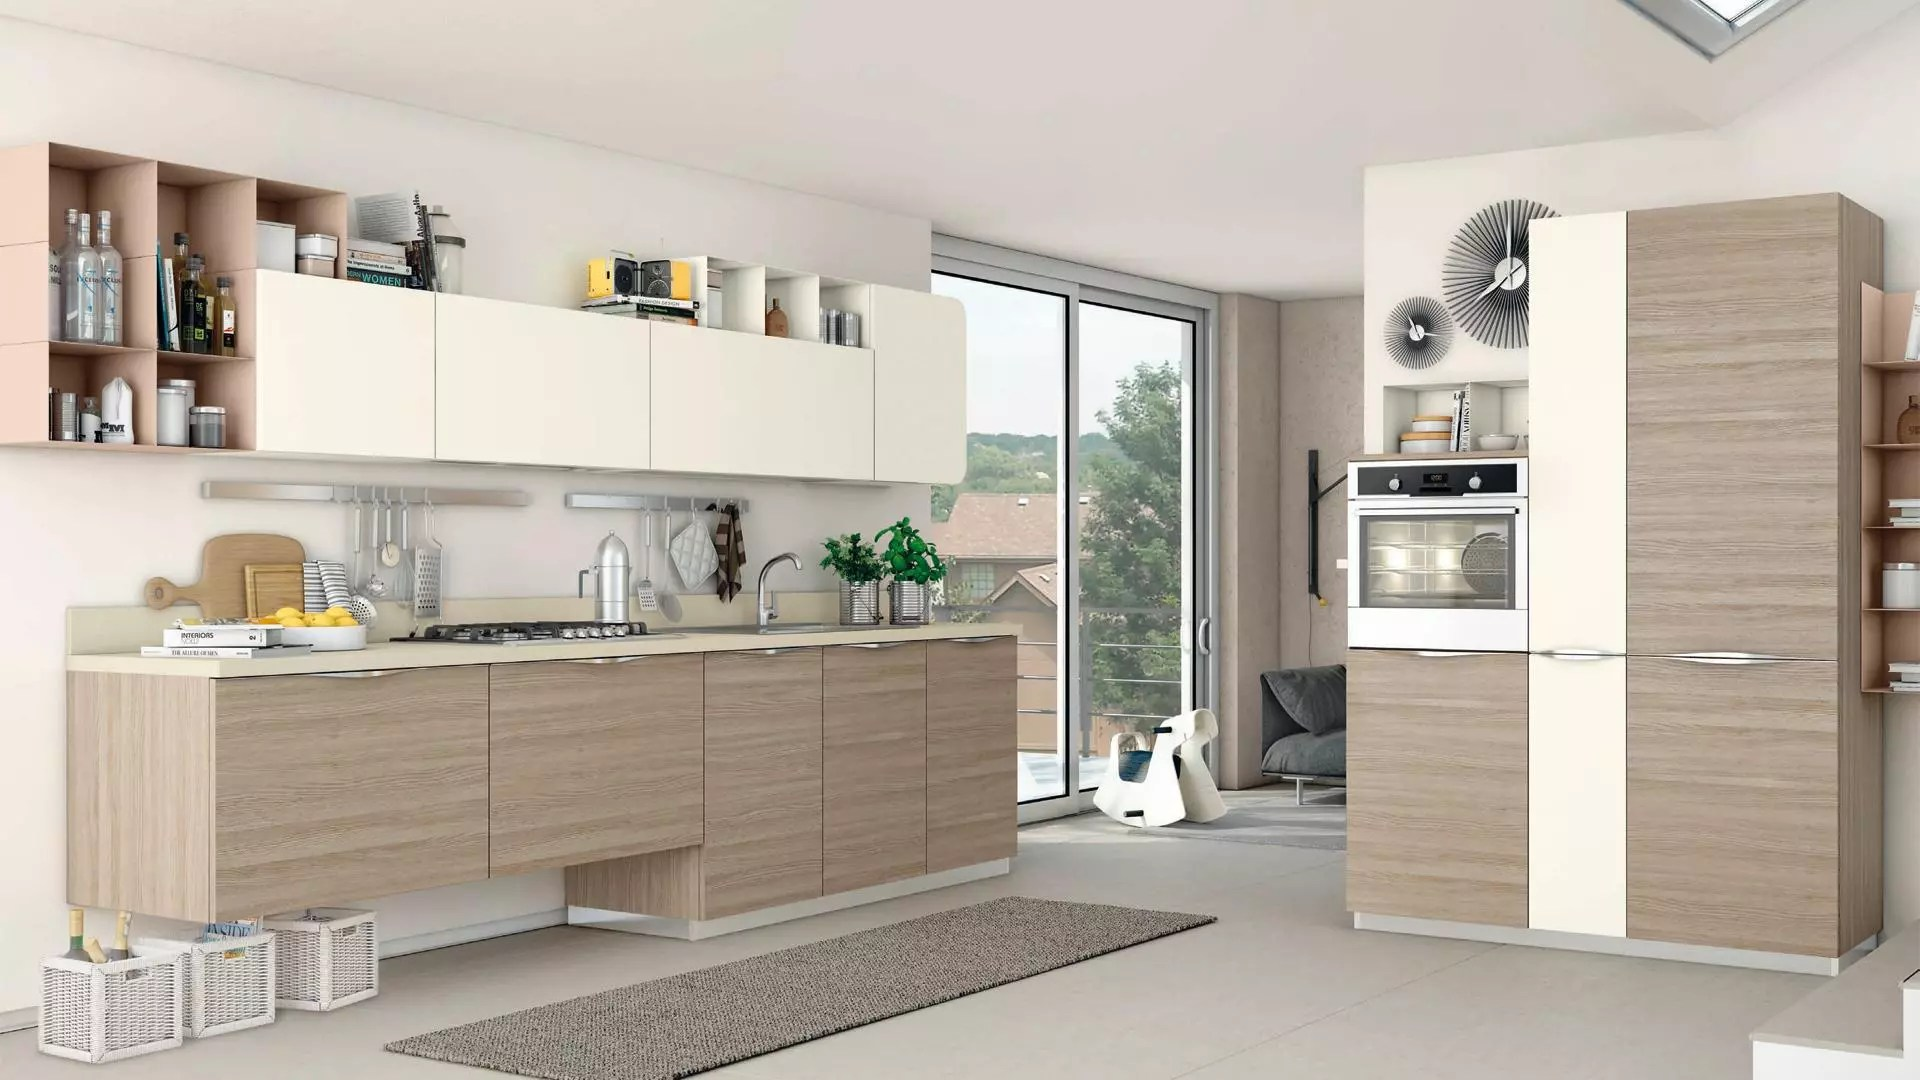 Lube cucine noemi idee di design decorativo per interni for Rizzo arreda